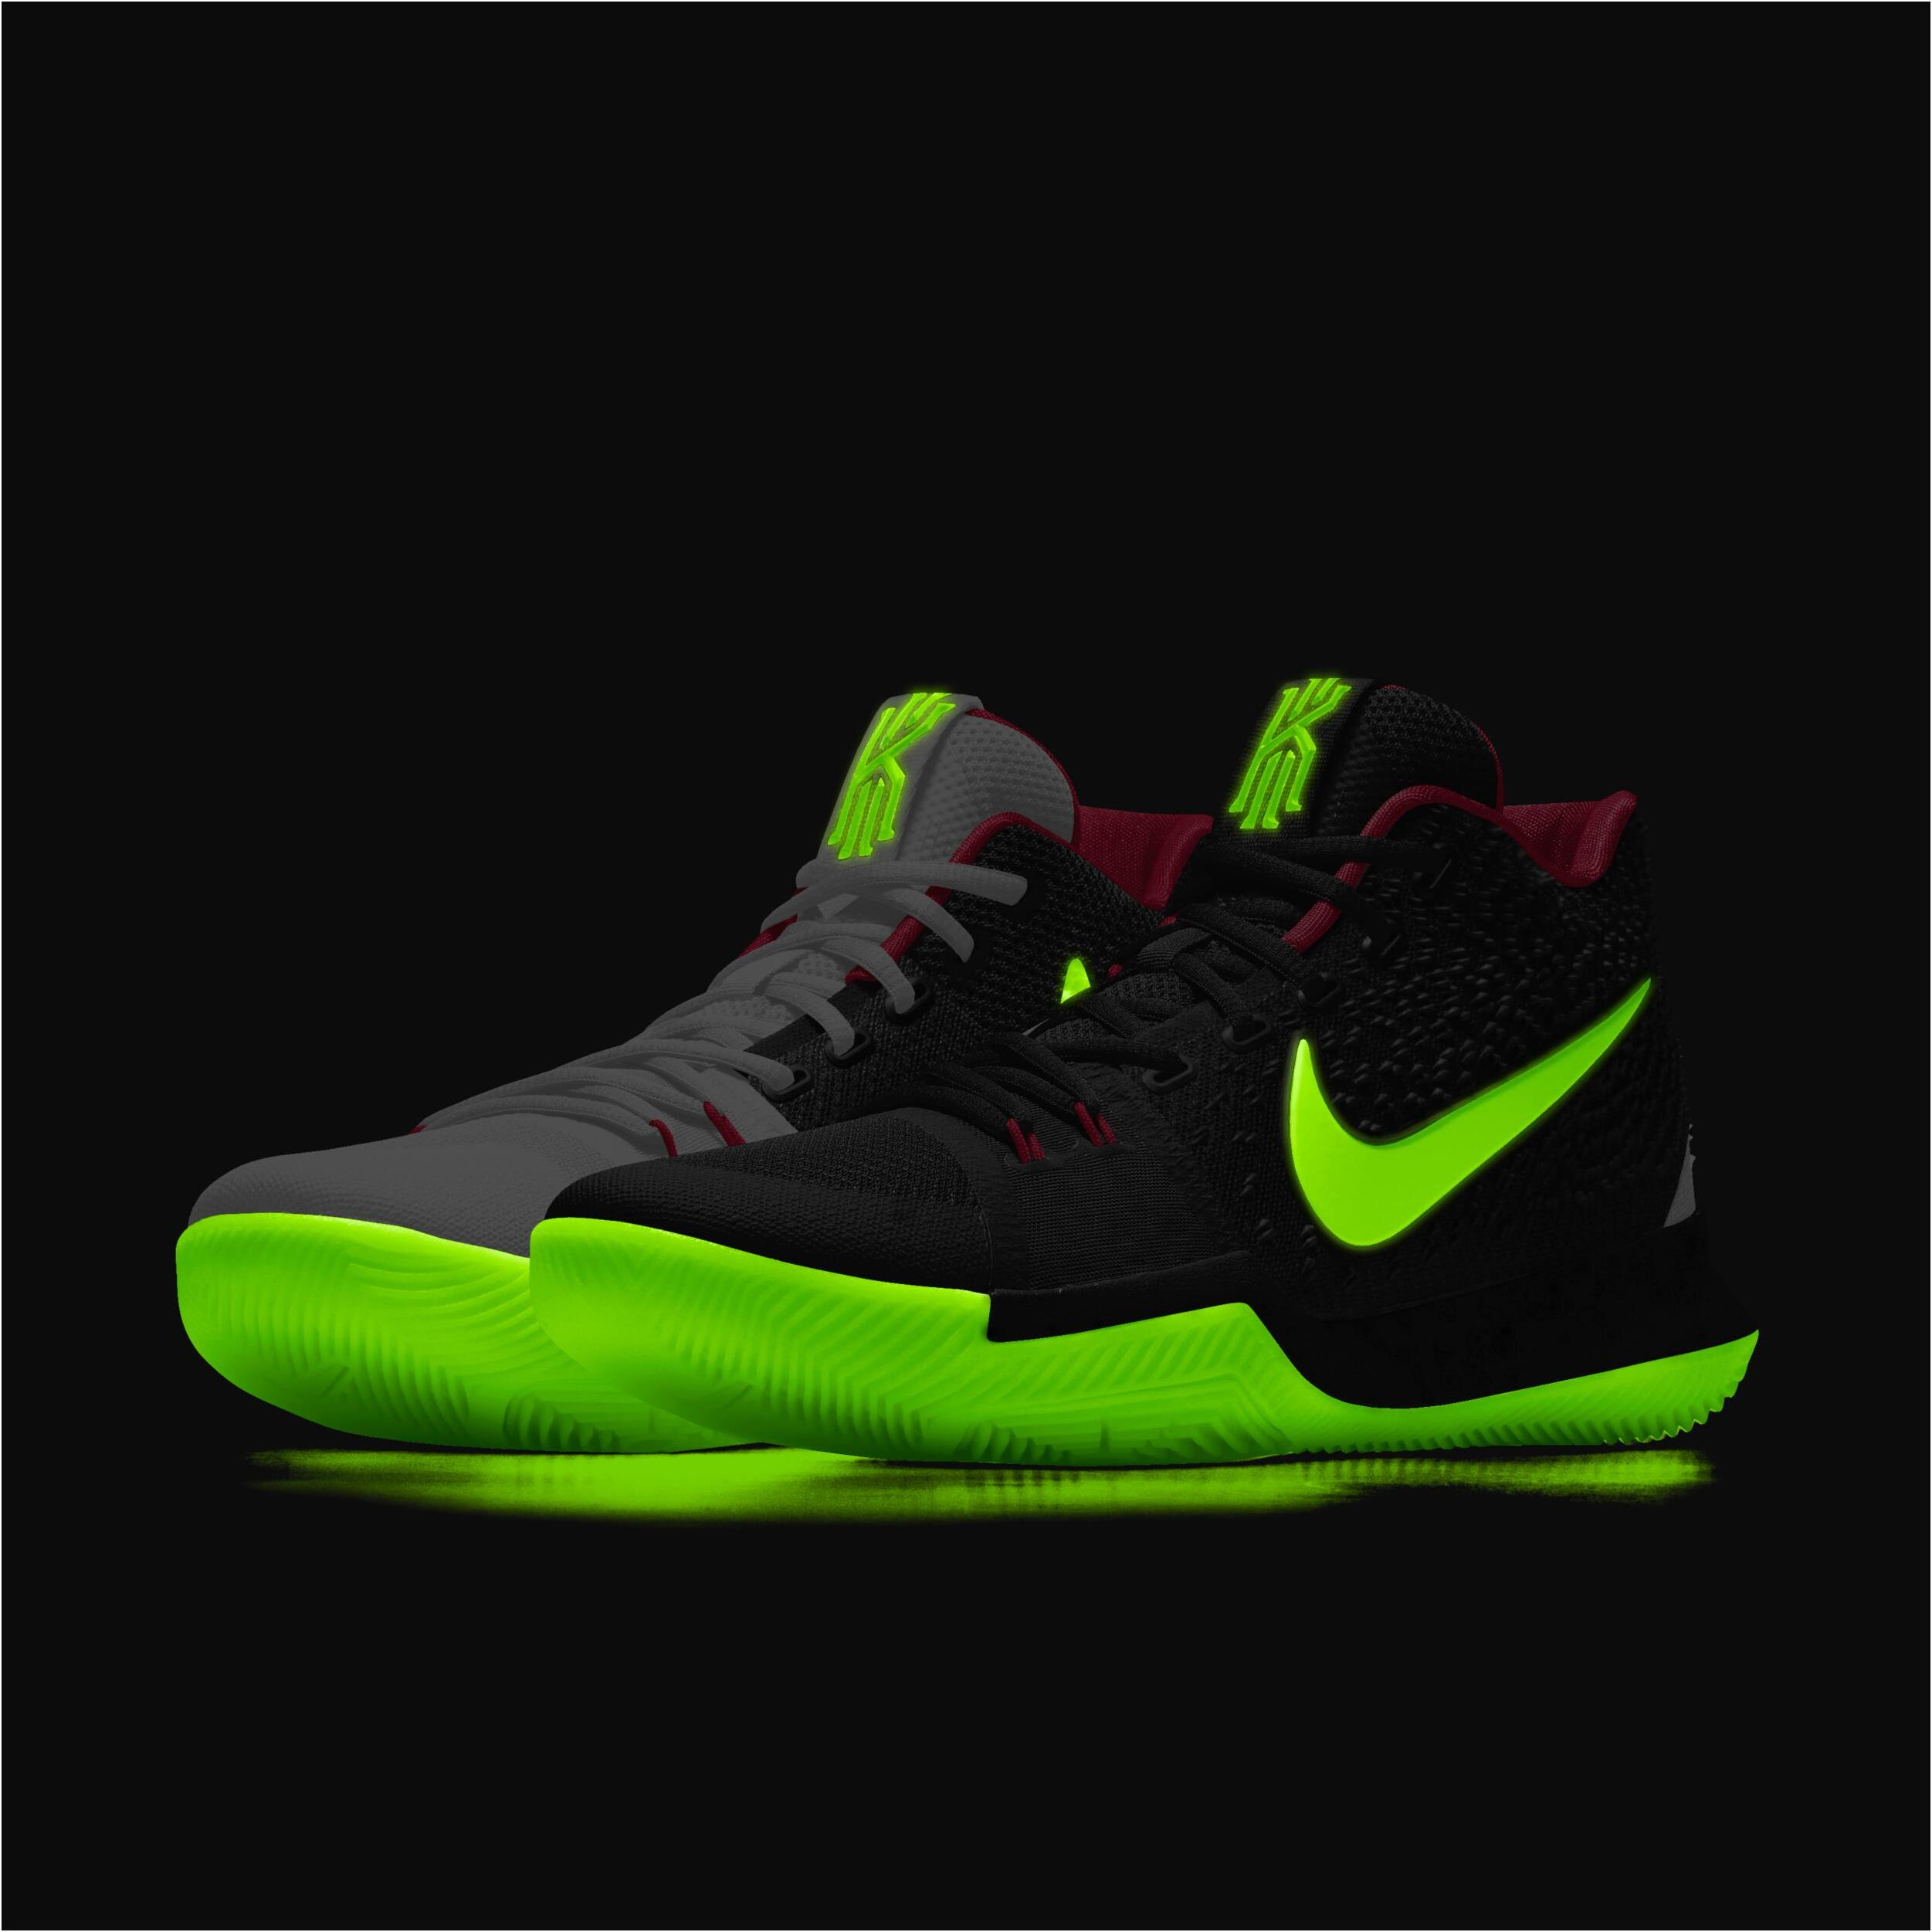 save off e3cf0 f8995 NikeID Kyrie 3 'Yeezy' Black Pure Platinum/Solar Red For Sale from BELLDRESS